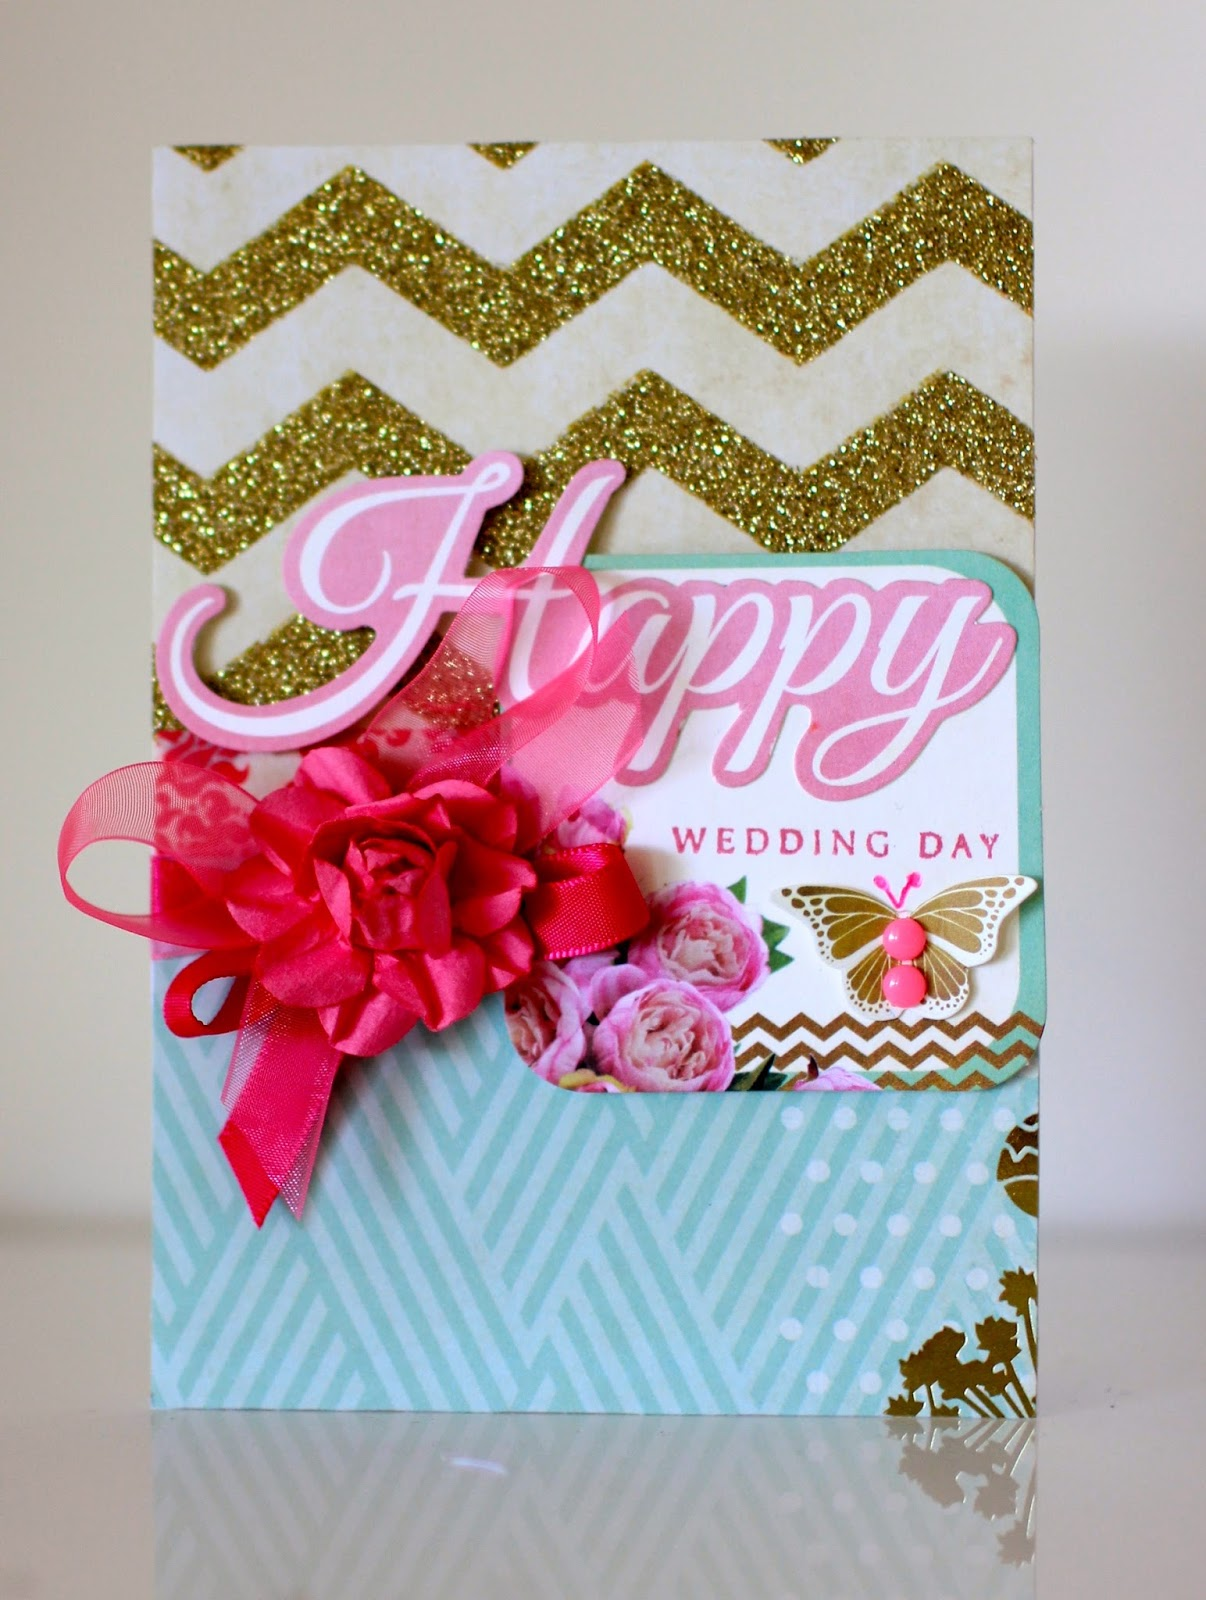 Happy Wedding Day Card